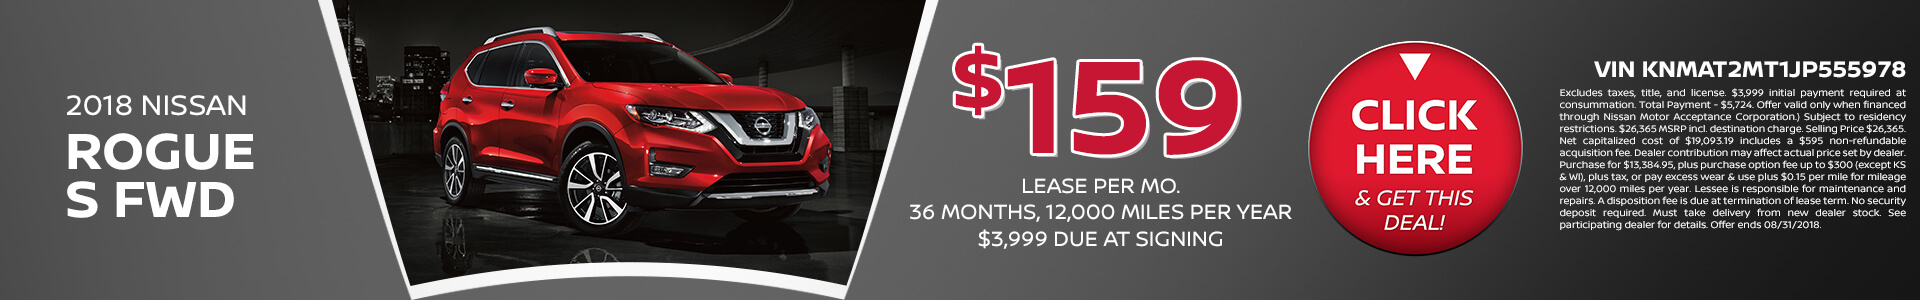 Rogue Lease $199